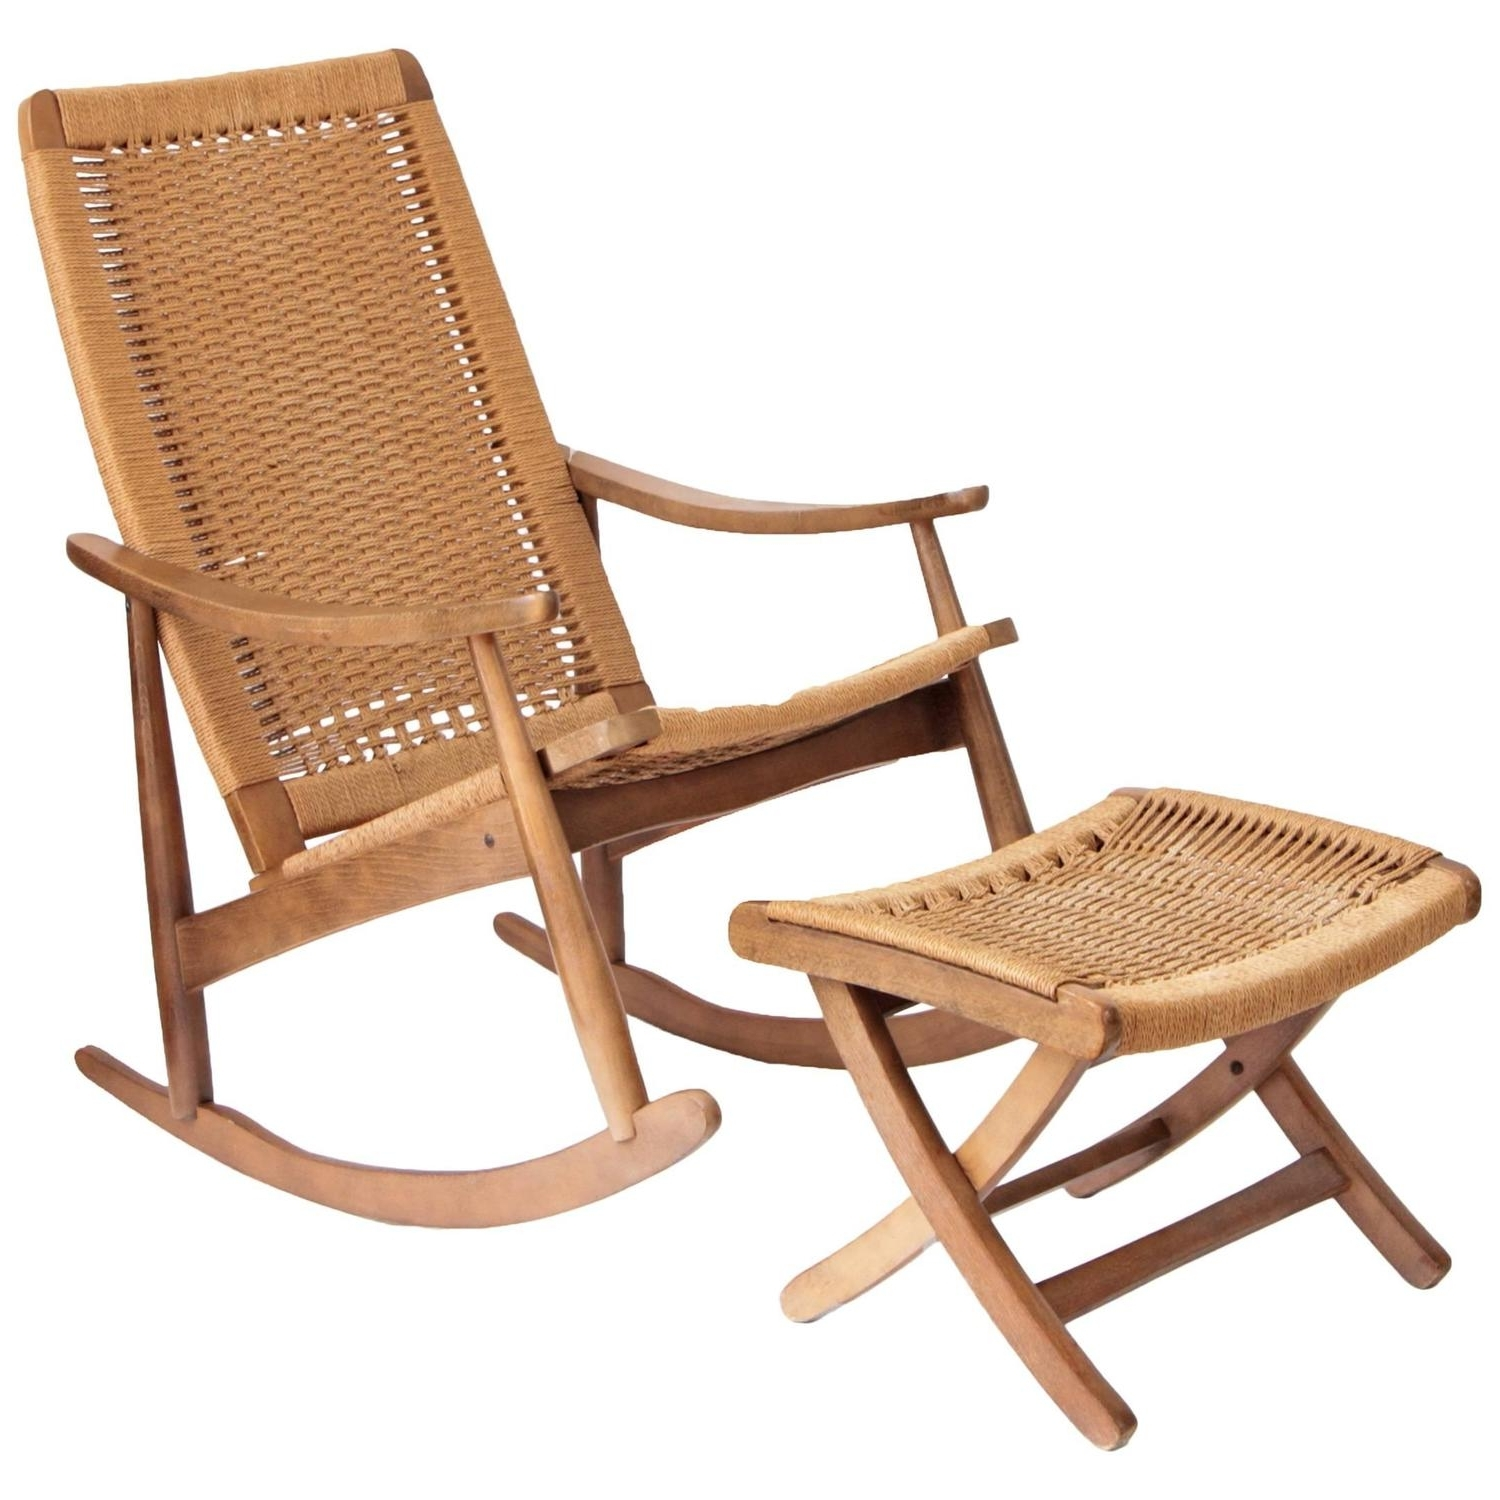 Most Popular Woven Rope Mid Century Modern Rocking Chair And Ottoman At 1Stdibs Pertaining To Wicker Rocking Chairs And Ottoman (View 7 of 15)